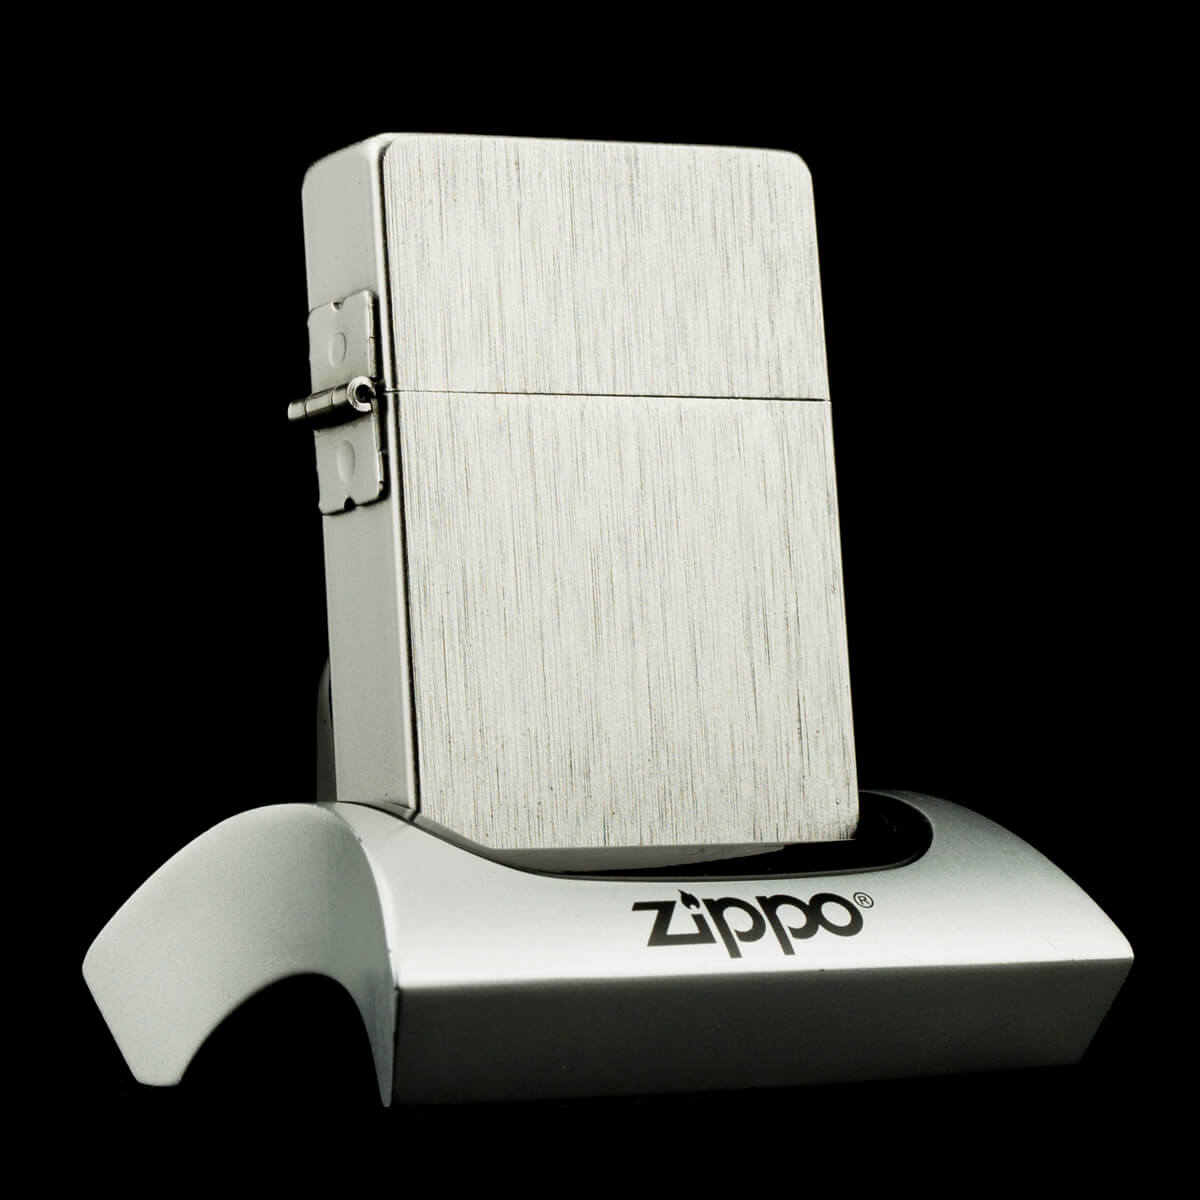 bat-lua-zippo-replica-1935-satin-brushed-hiem-2008